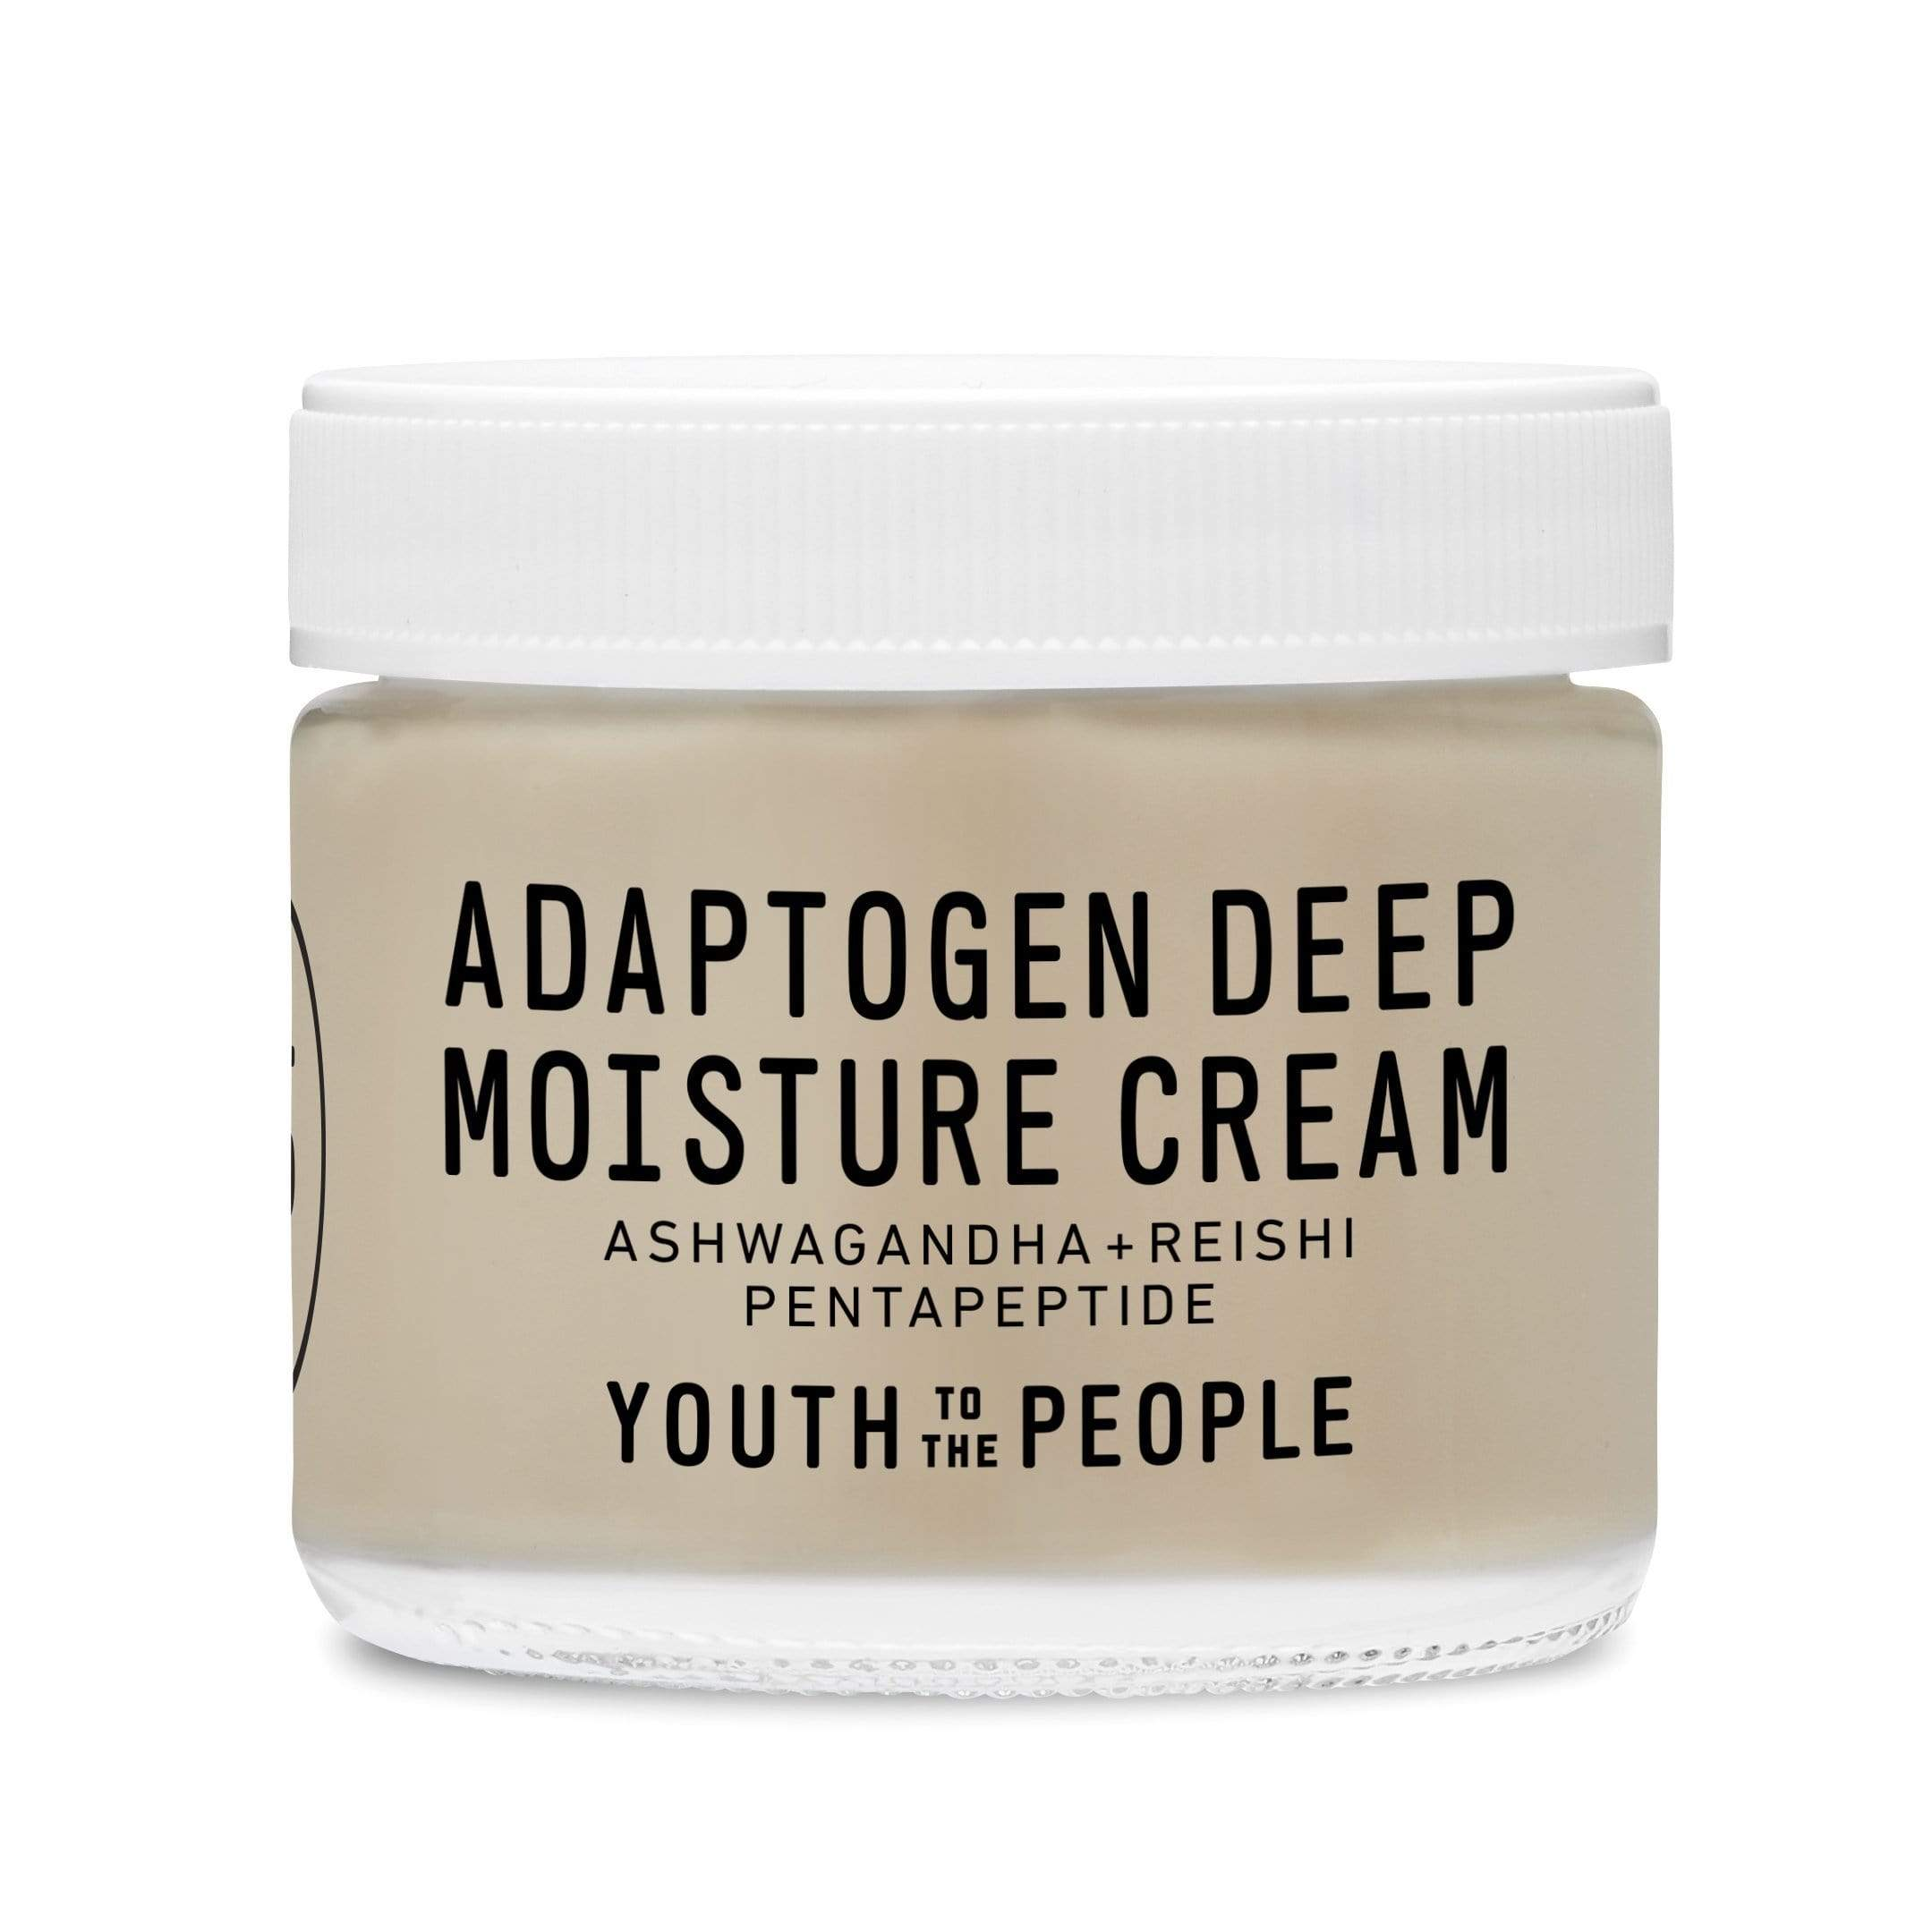 Youth To The People Adaptogen Deep Moisture Cream, 59ml, Moisturizer, London Loves Beauty